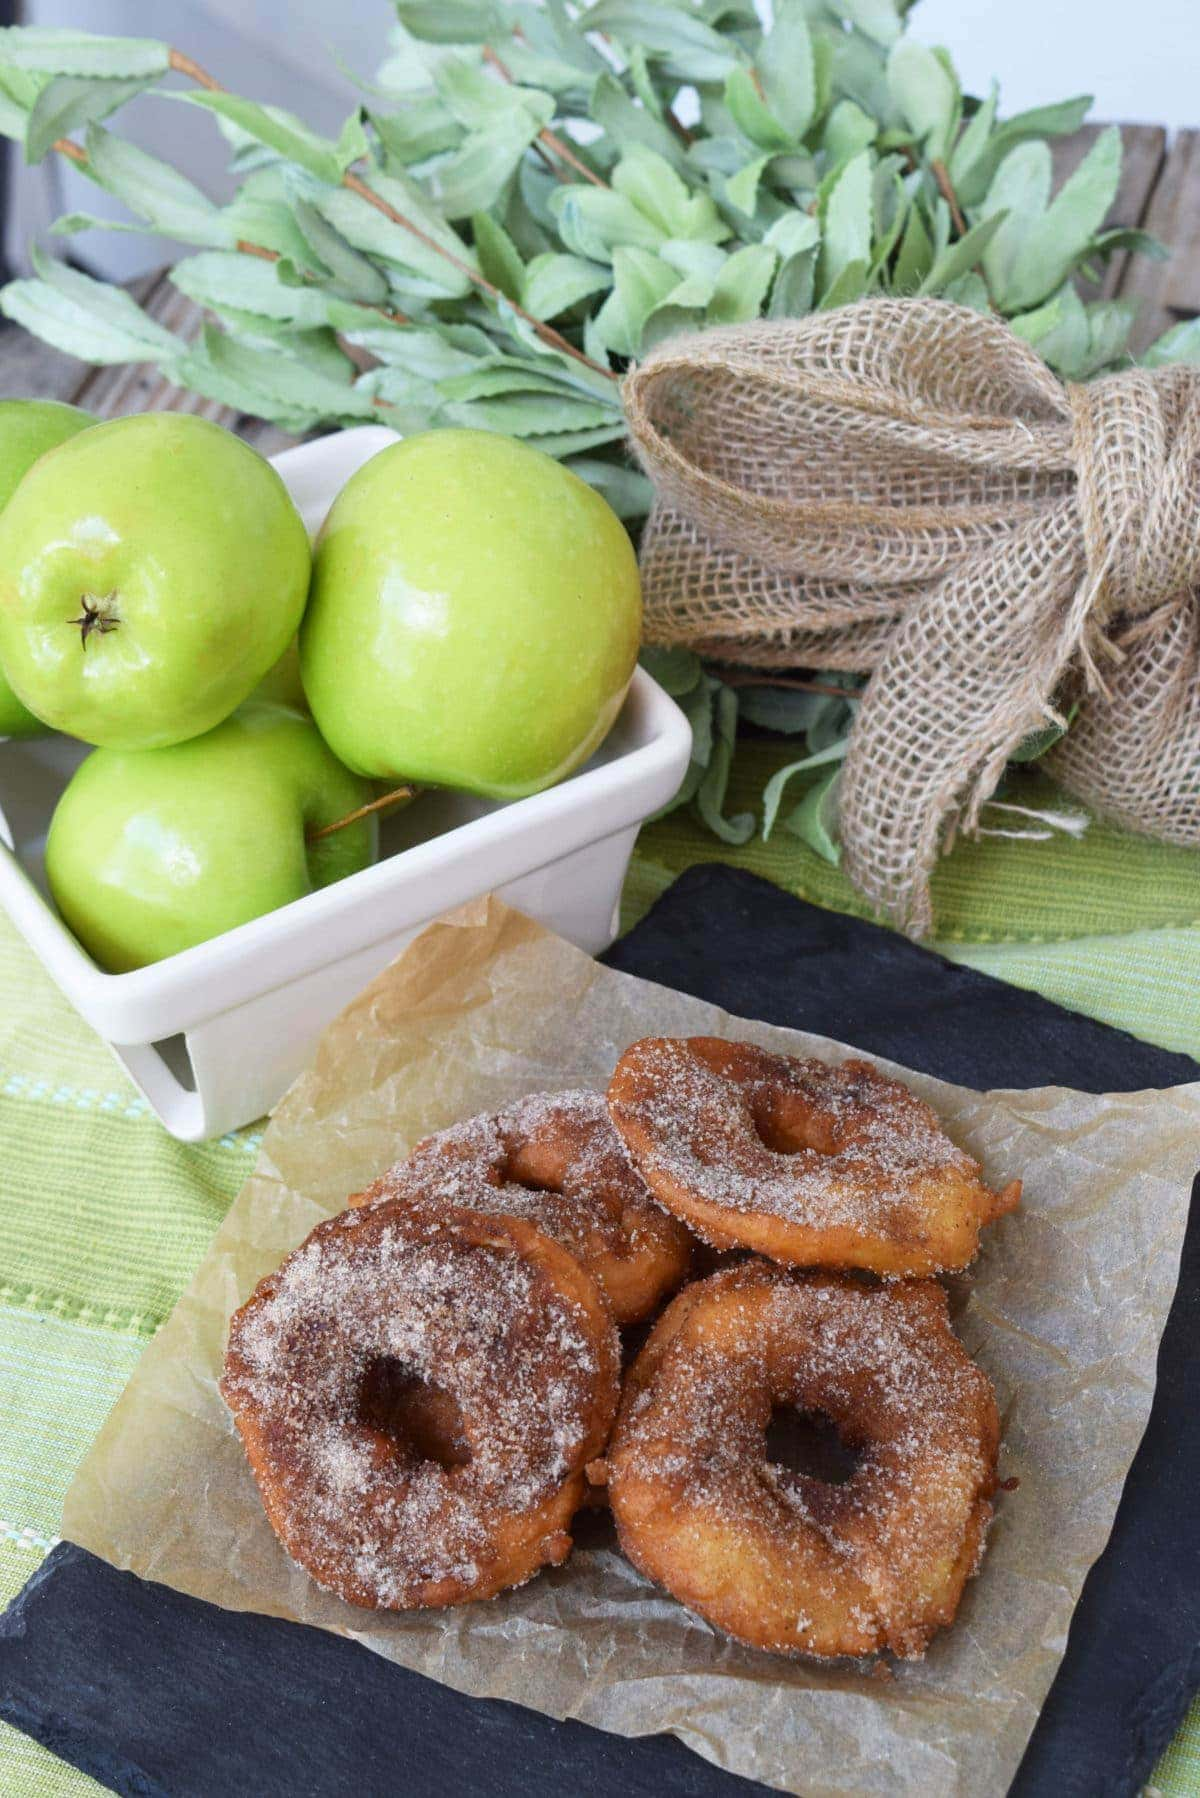 Fried Green Apples